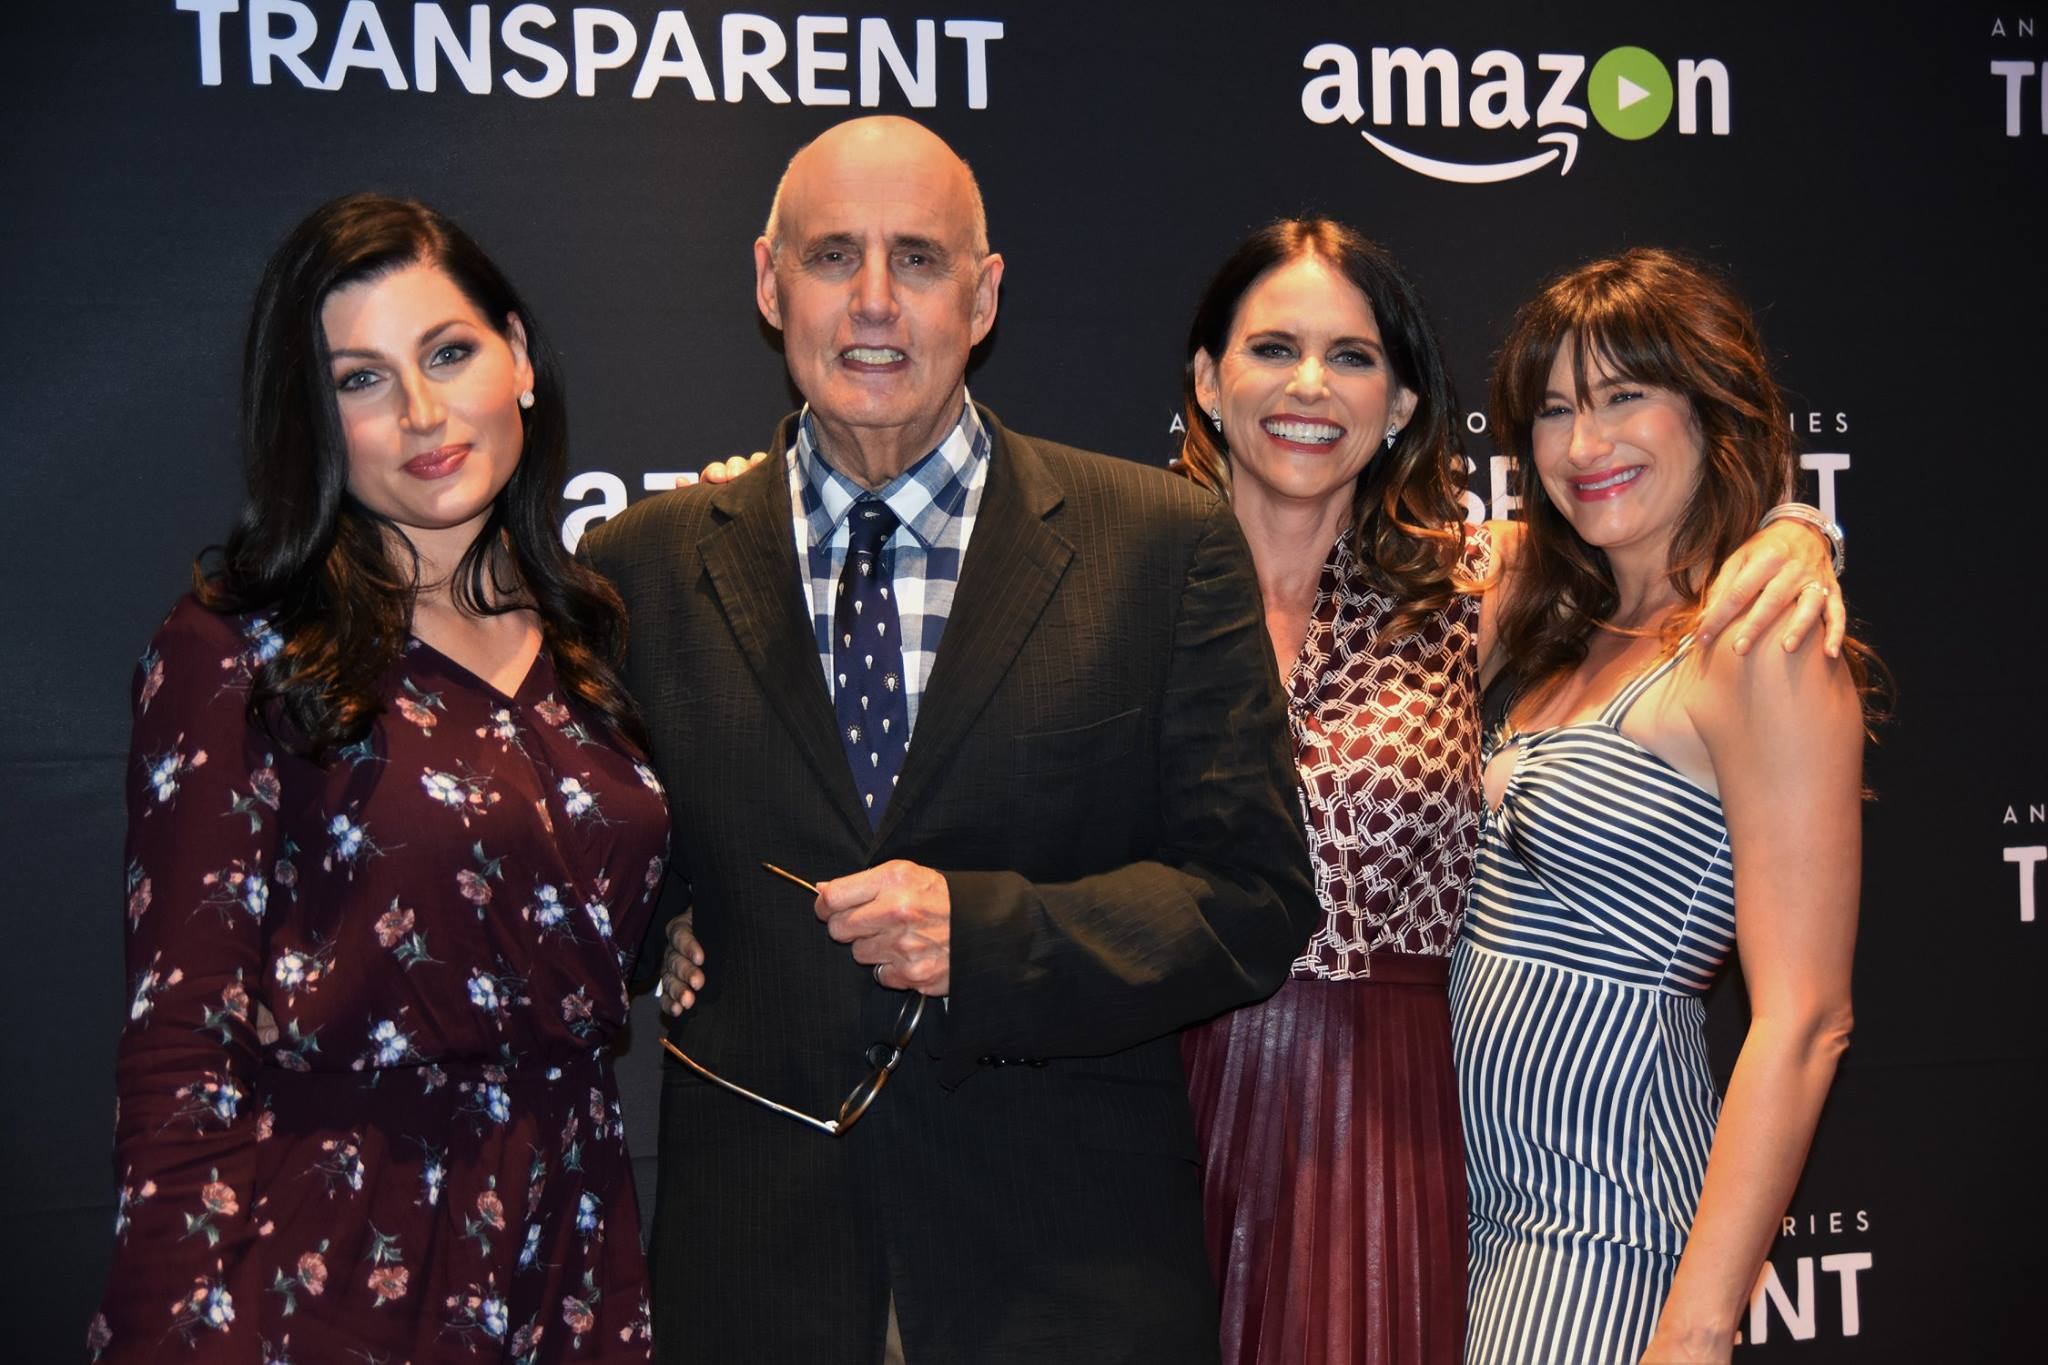 The cast of Transparent at the Naval Memorial in DC (l to r: Trace Lysette, Jeffrey Tambor, Amy Landecker & Kathryn Hahn) Photo credit: Renita Clarke